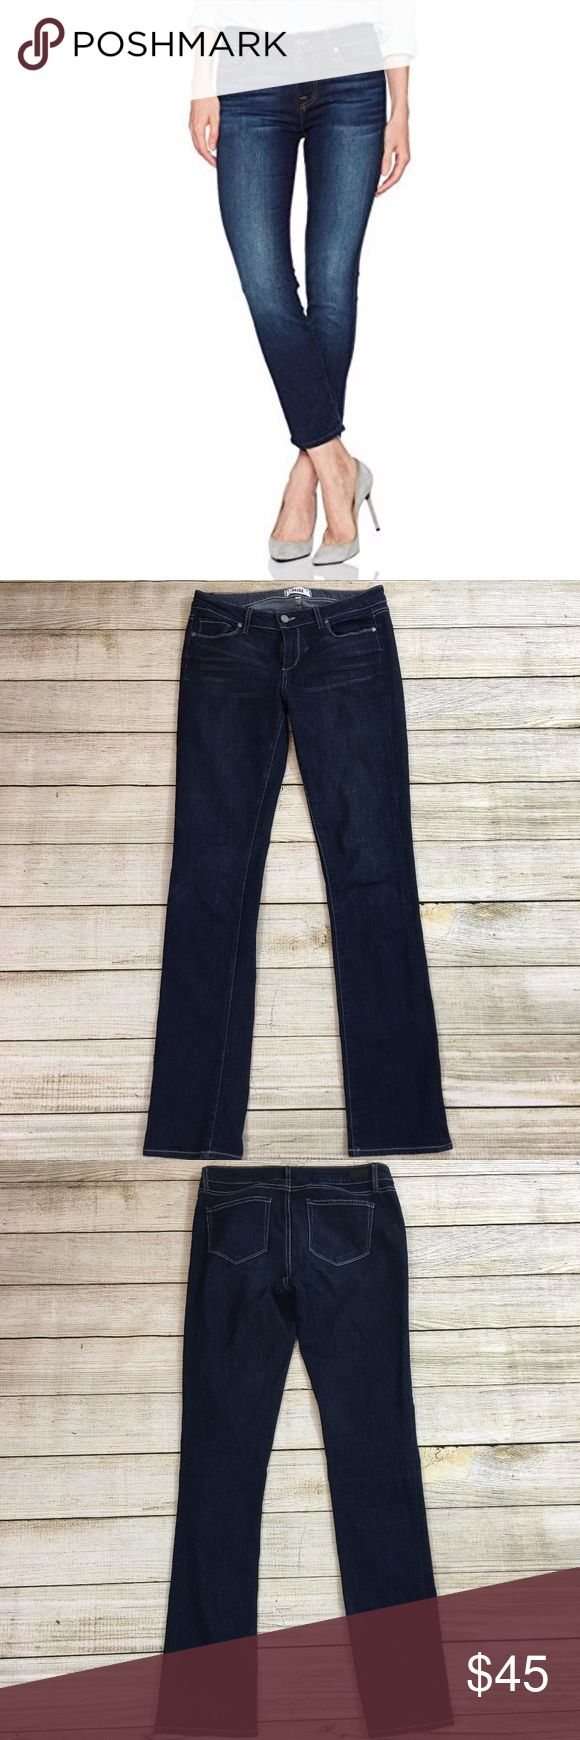 PAIGE Skyline Jeans Inseam: 33 inches Lay Flat Waist: 15 inches Lay Flat Leg Opening: 7 inches Rise: 8.5 inches Fabric: 69% cotton, 30% polyester, 1% elastane Description: like new condition  Bundle & Save: 10% off or more  NO TRADES Shipping within 24 hours Paige Jeans Jeans Straight Leg